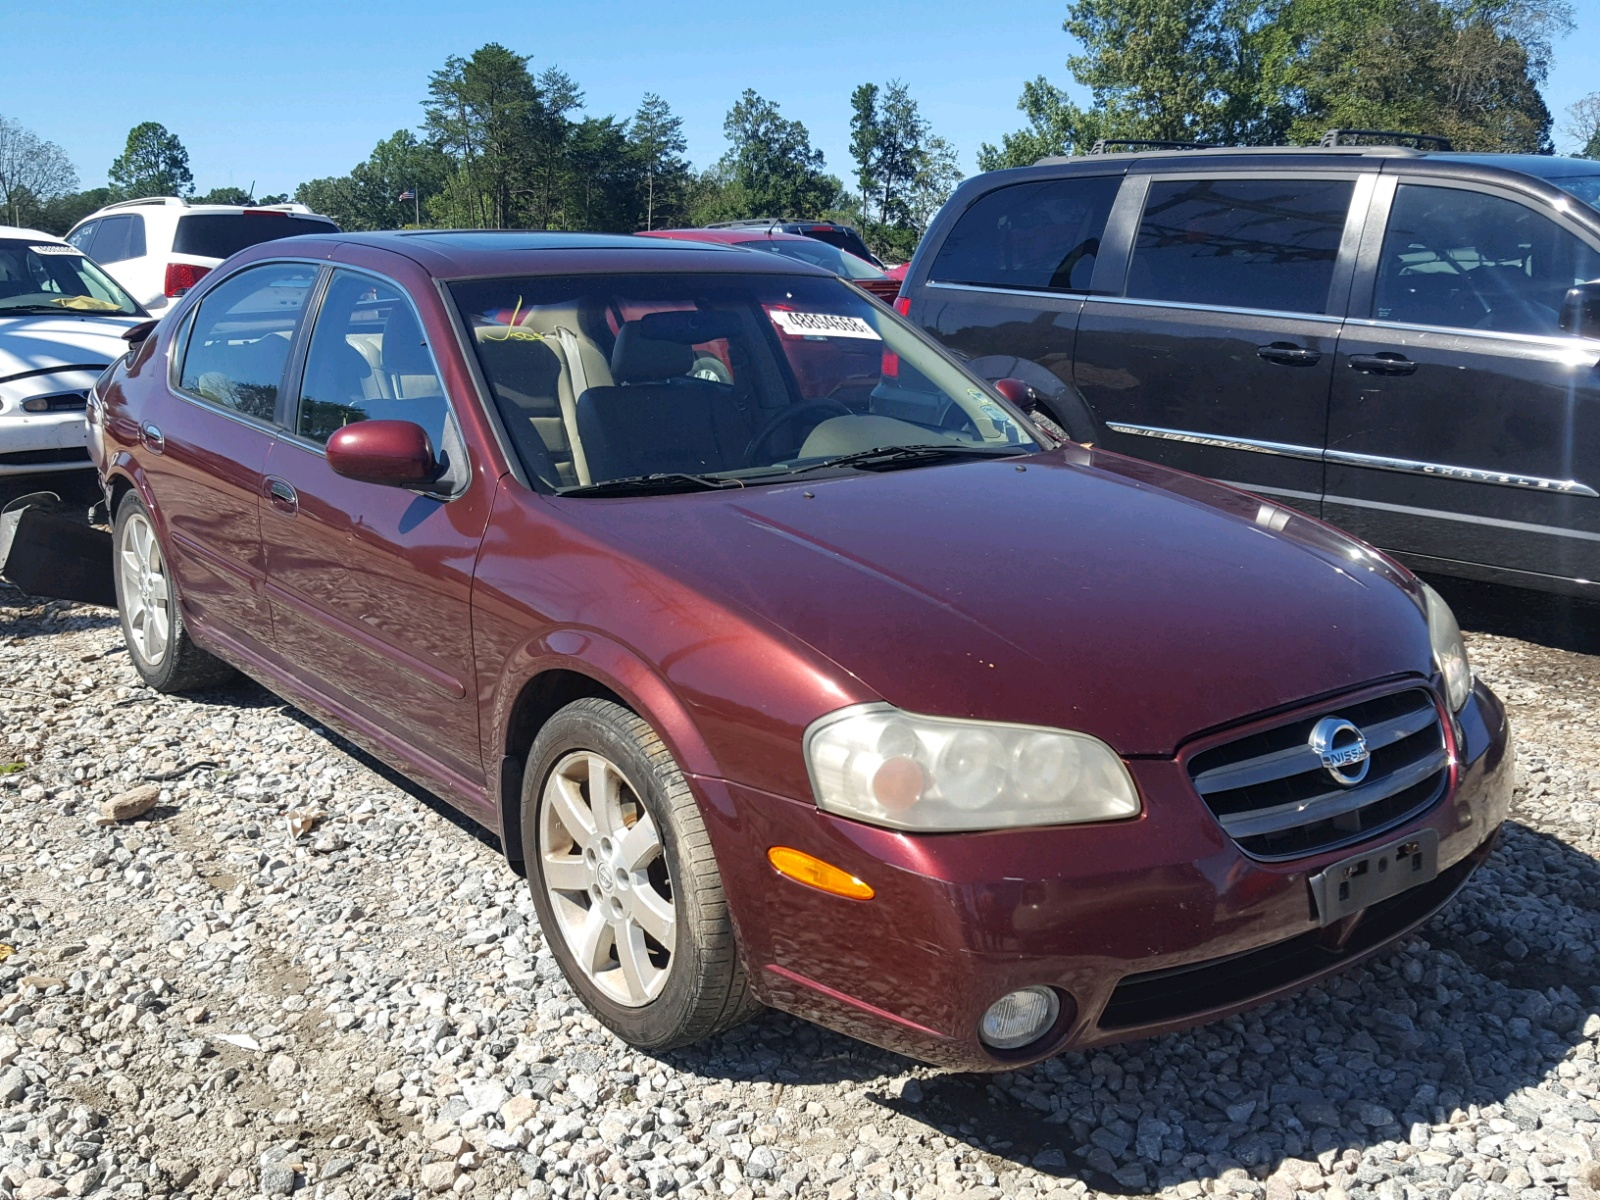 Salvage 2002 Nissan MAXIMA GLE for sale